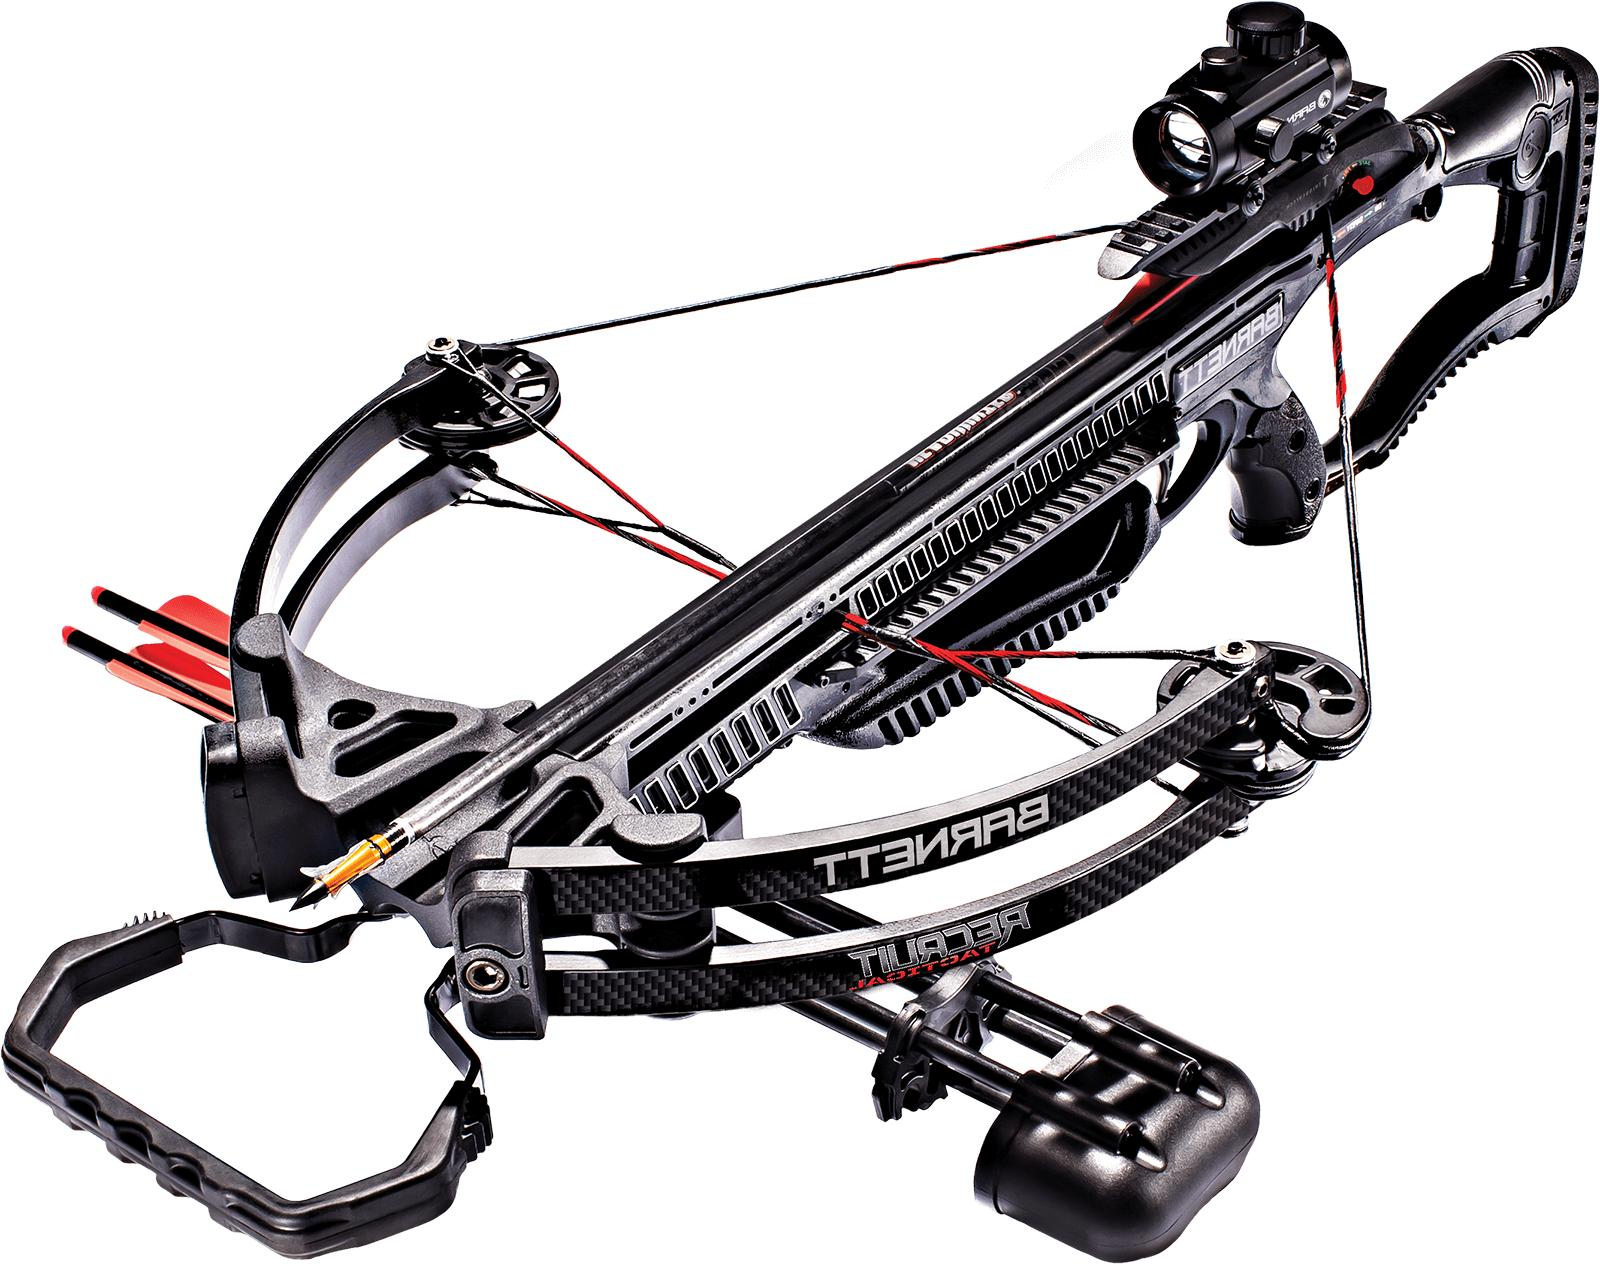 Barnett Crossbows Recruit Tactical Compound Crossbow Package